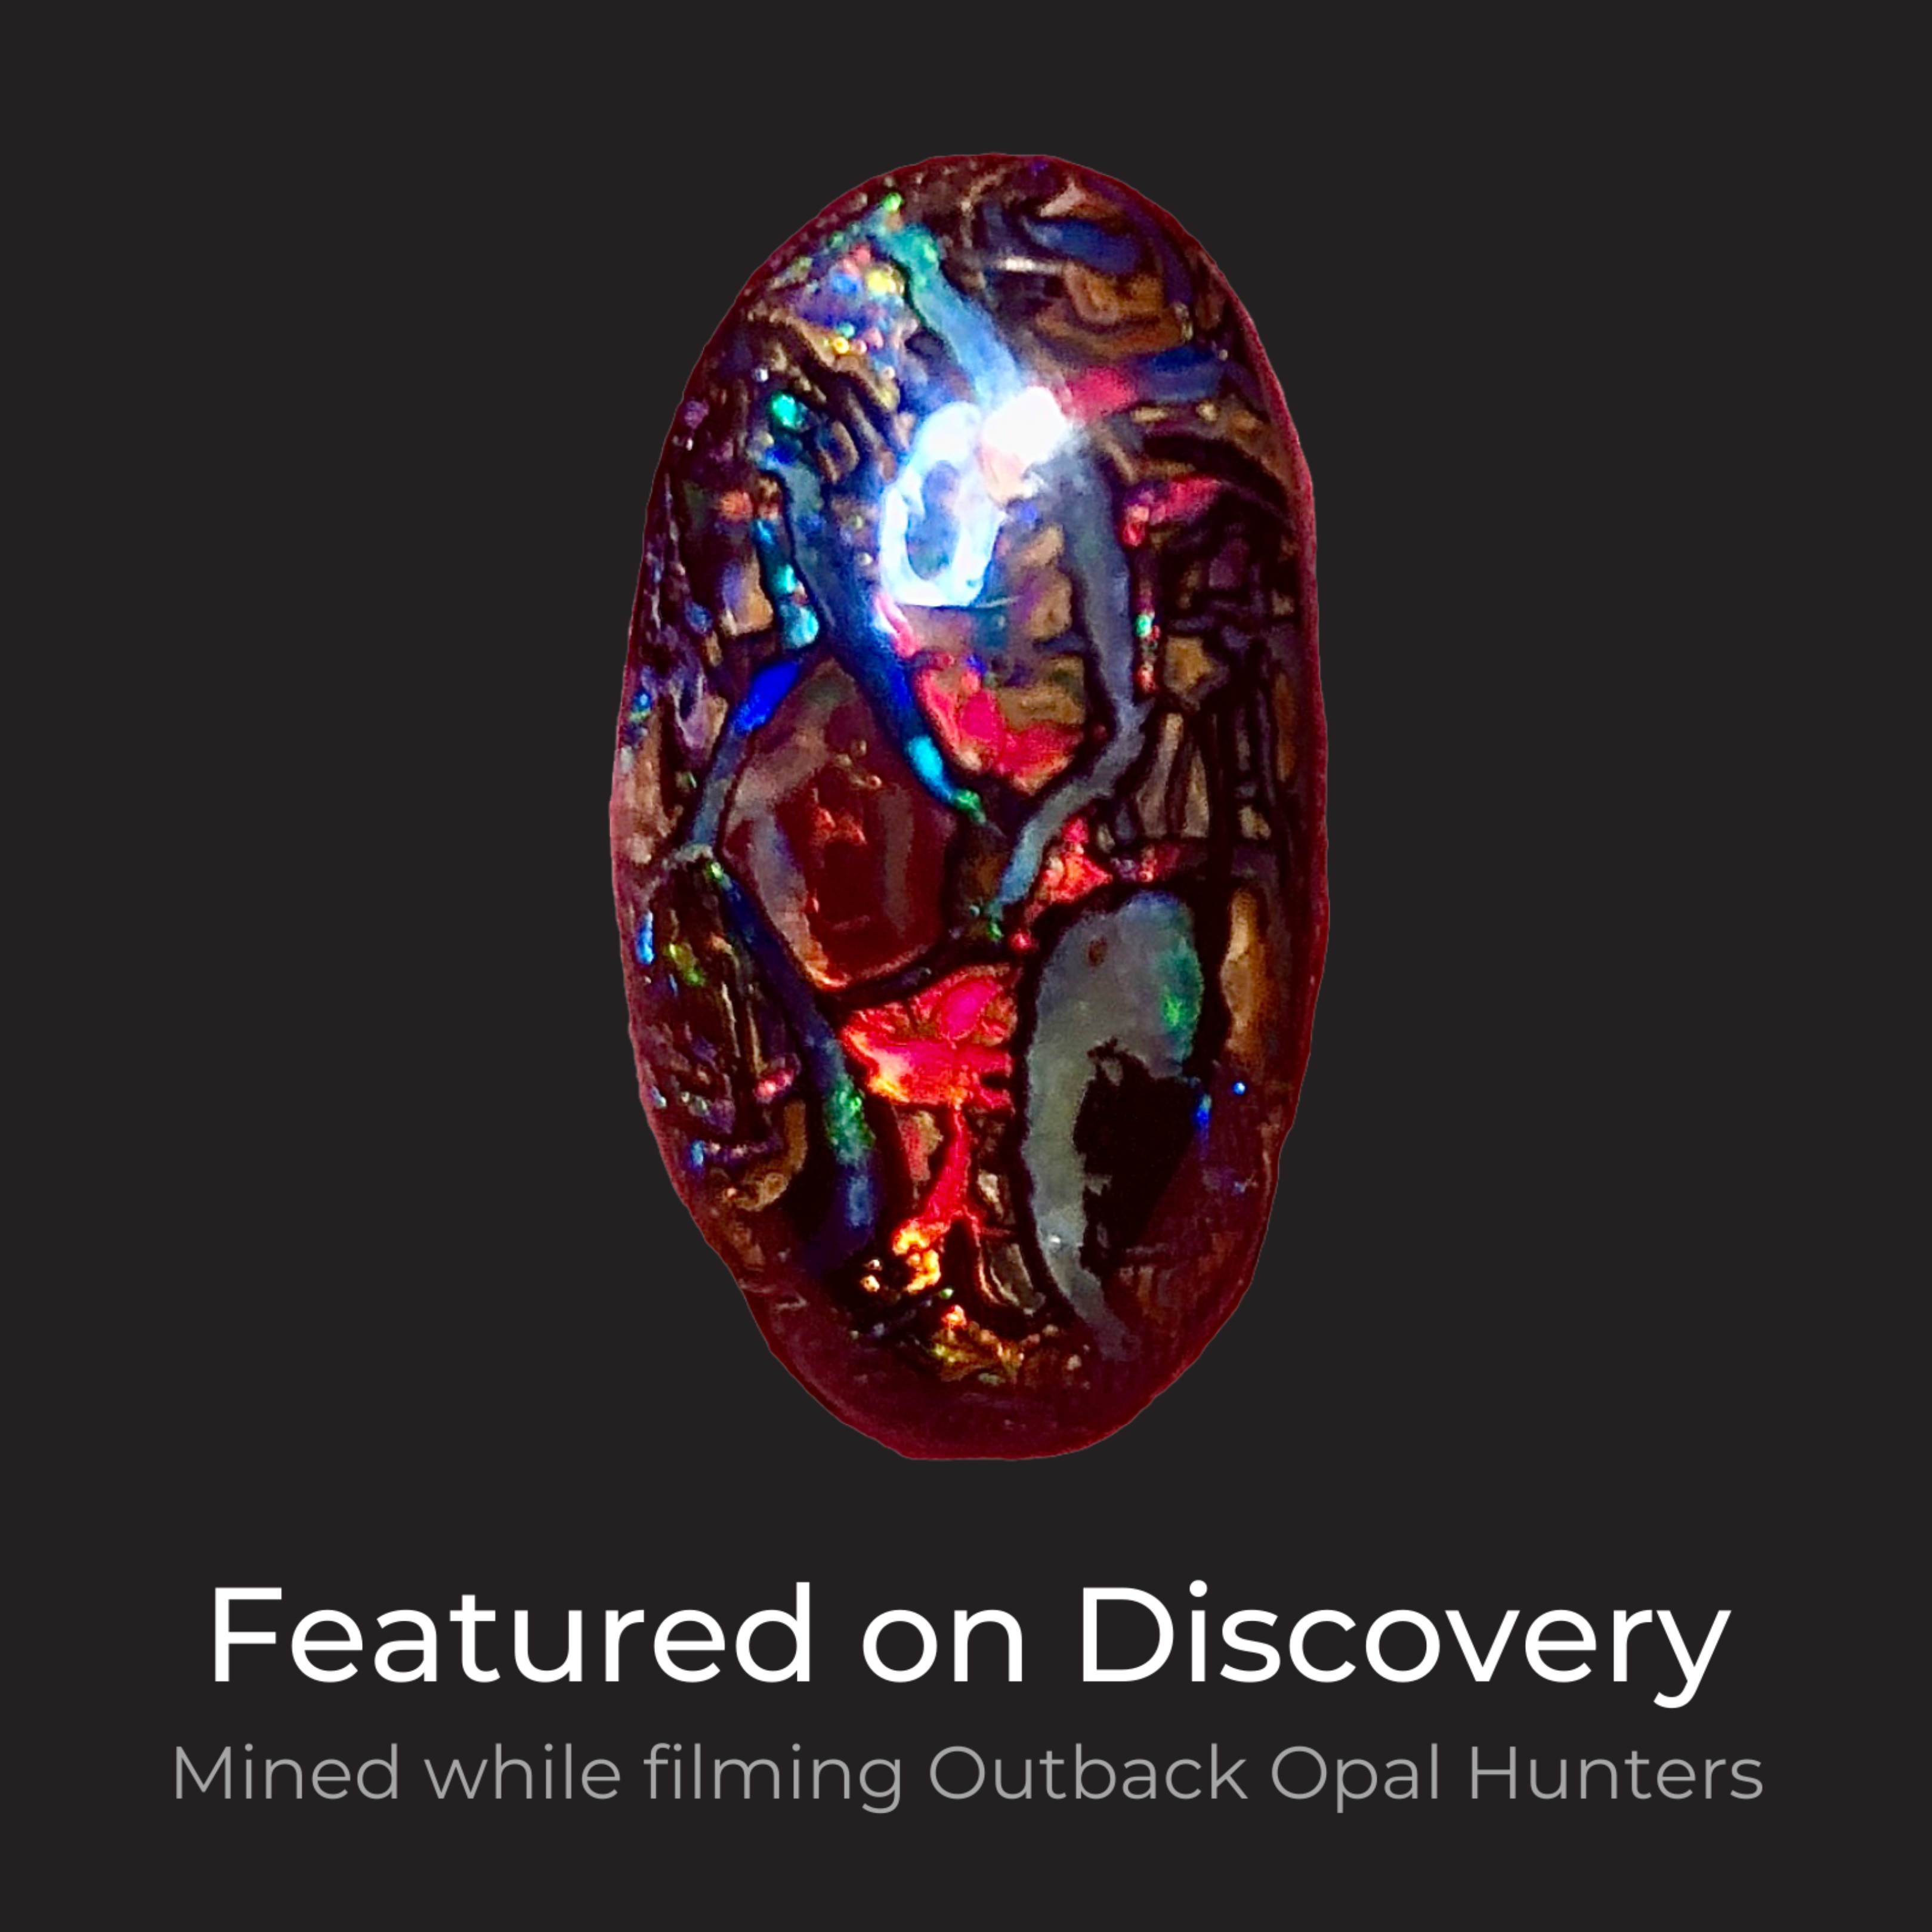 FEATURED ON DISCOVERY